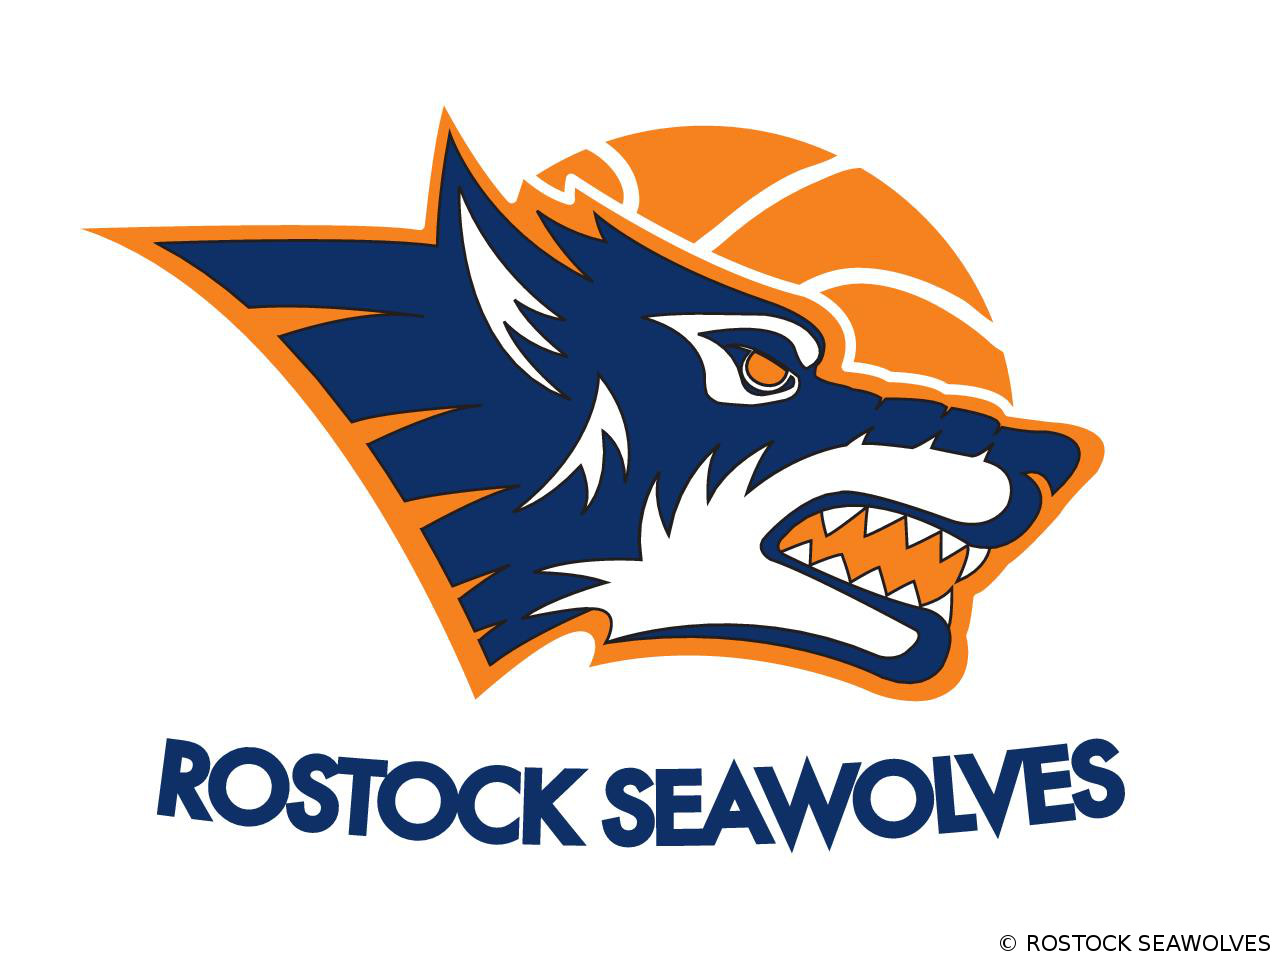 Fan-Tag der ROSTOCK SEAWOLVES